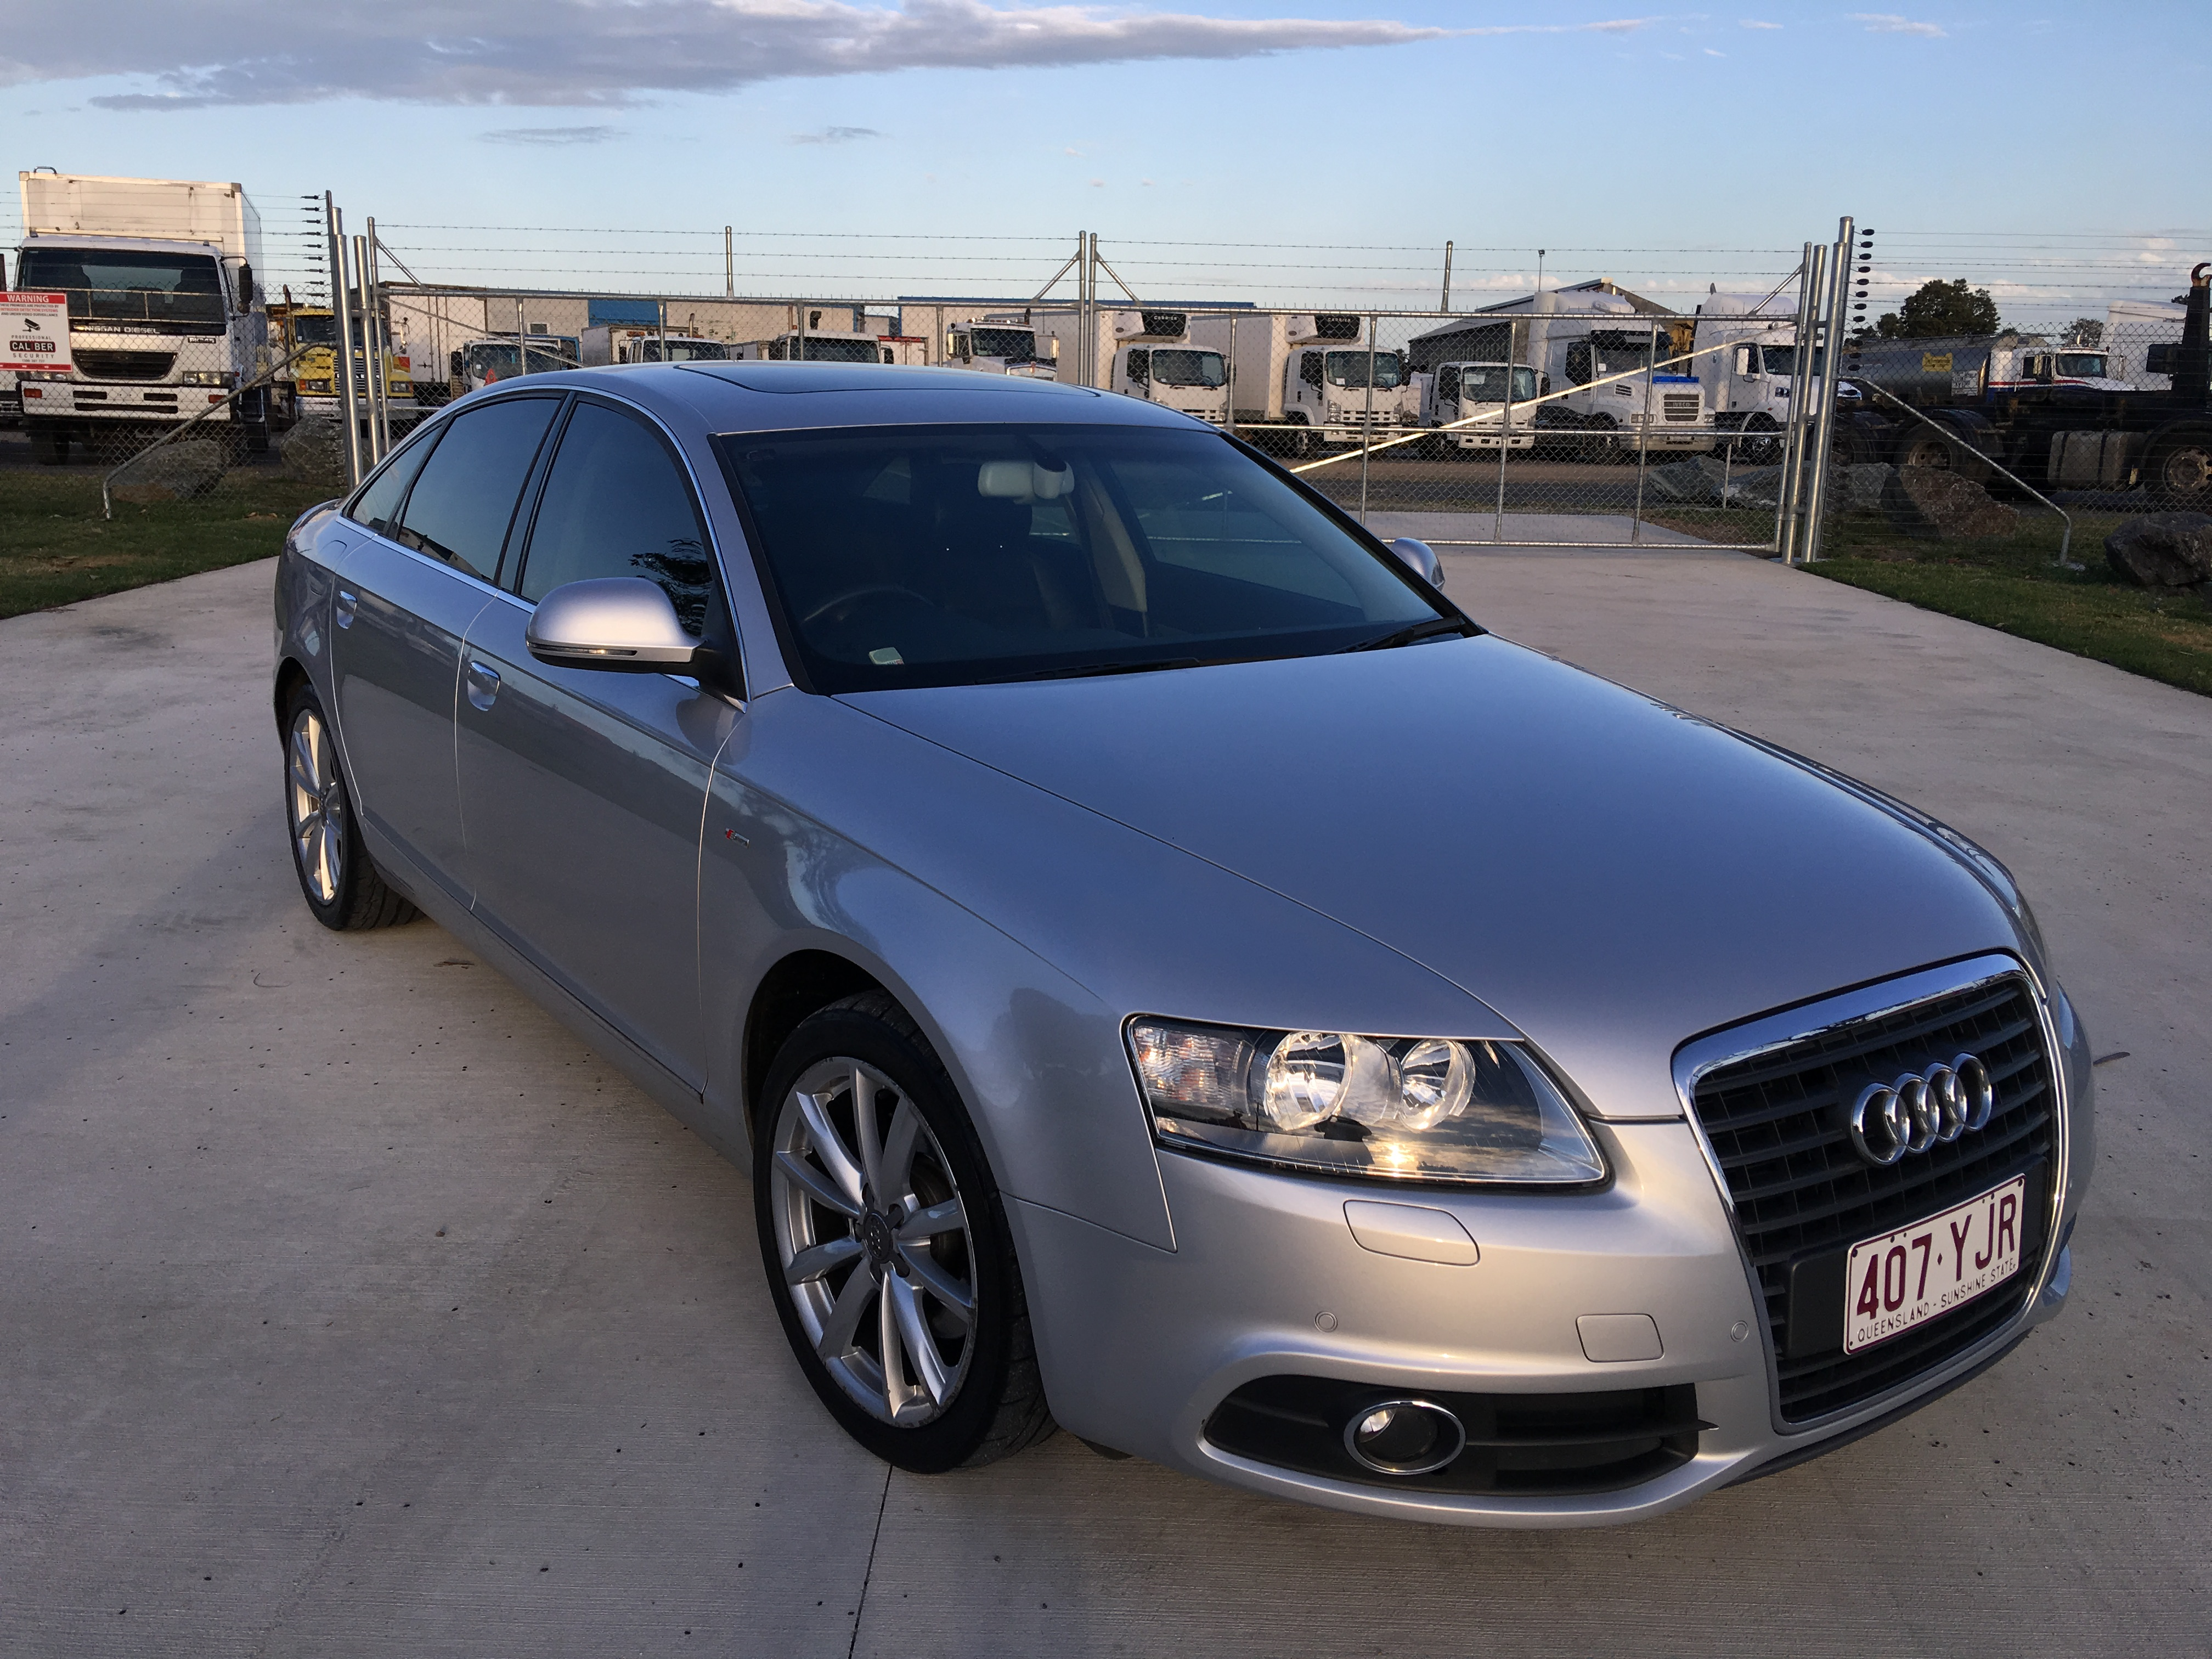 Picture of Paul's 2010 Audi A6